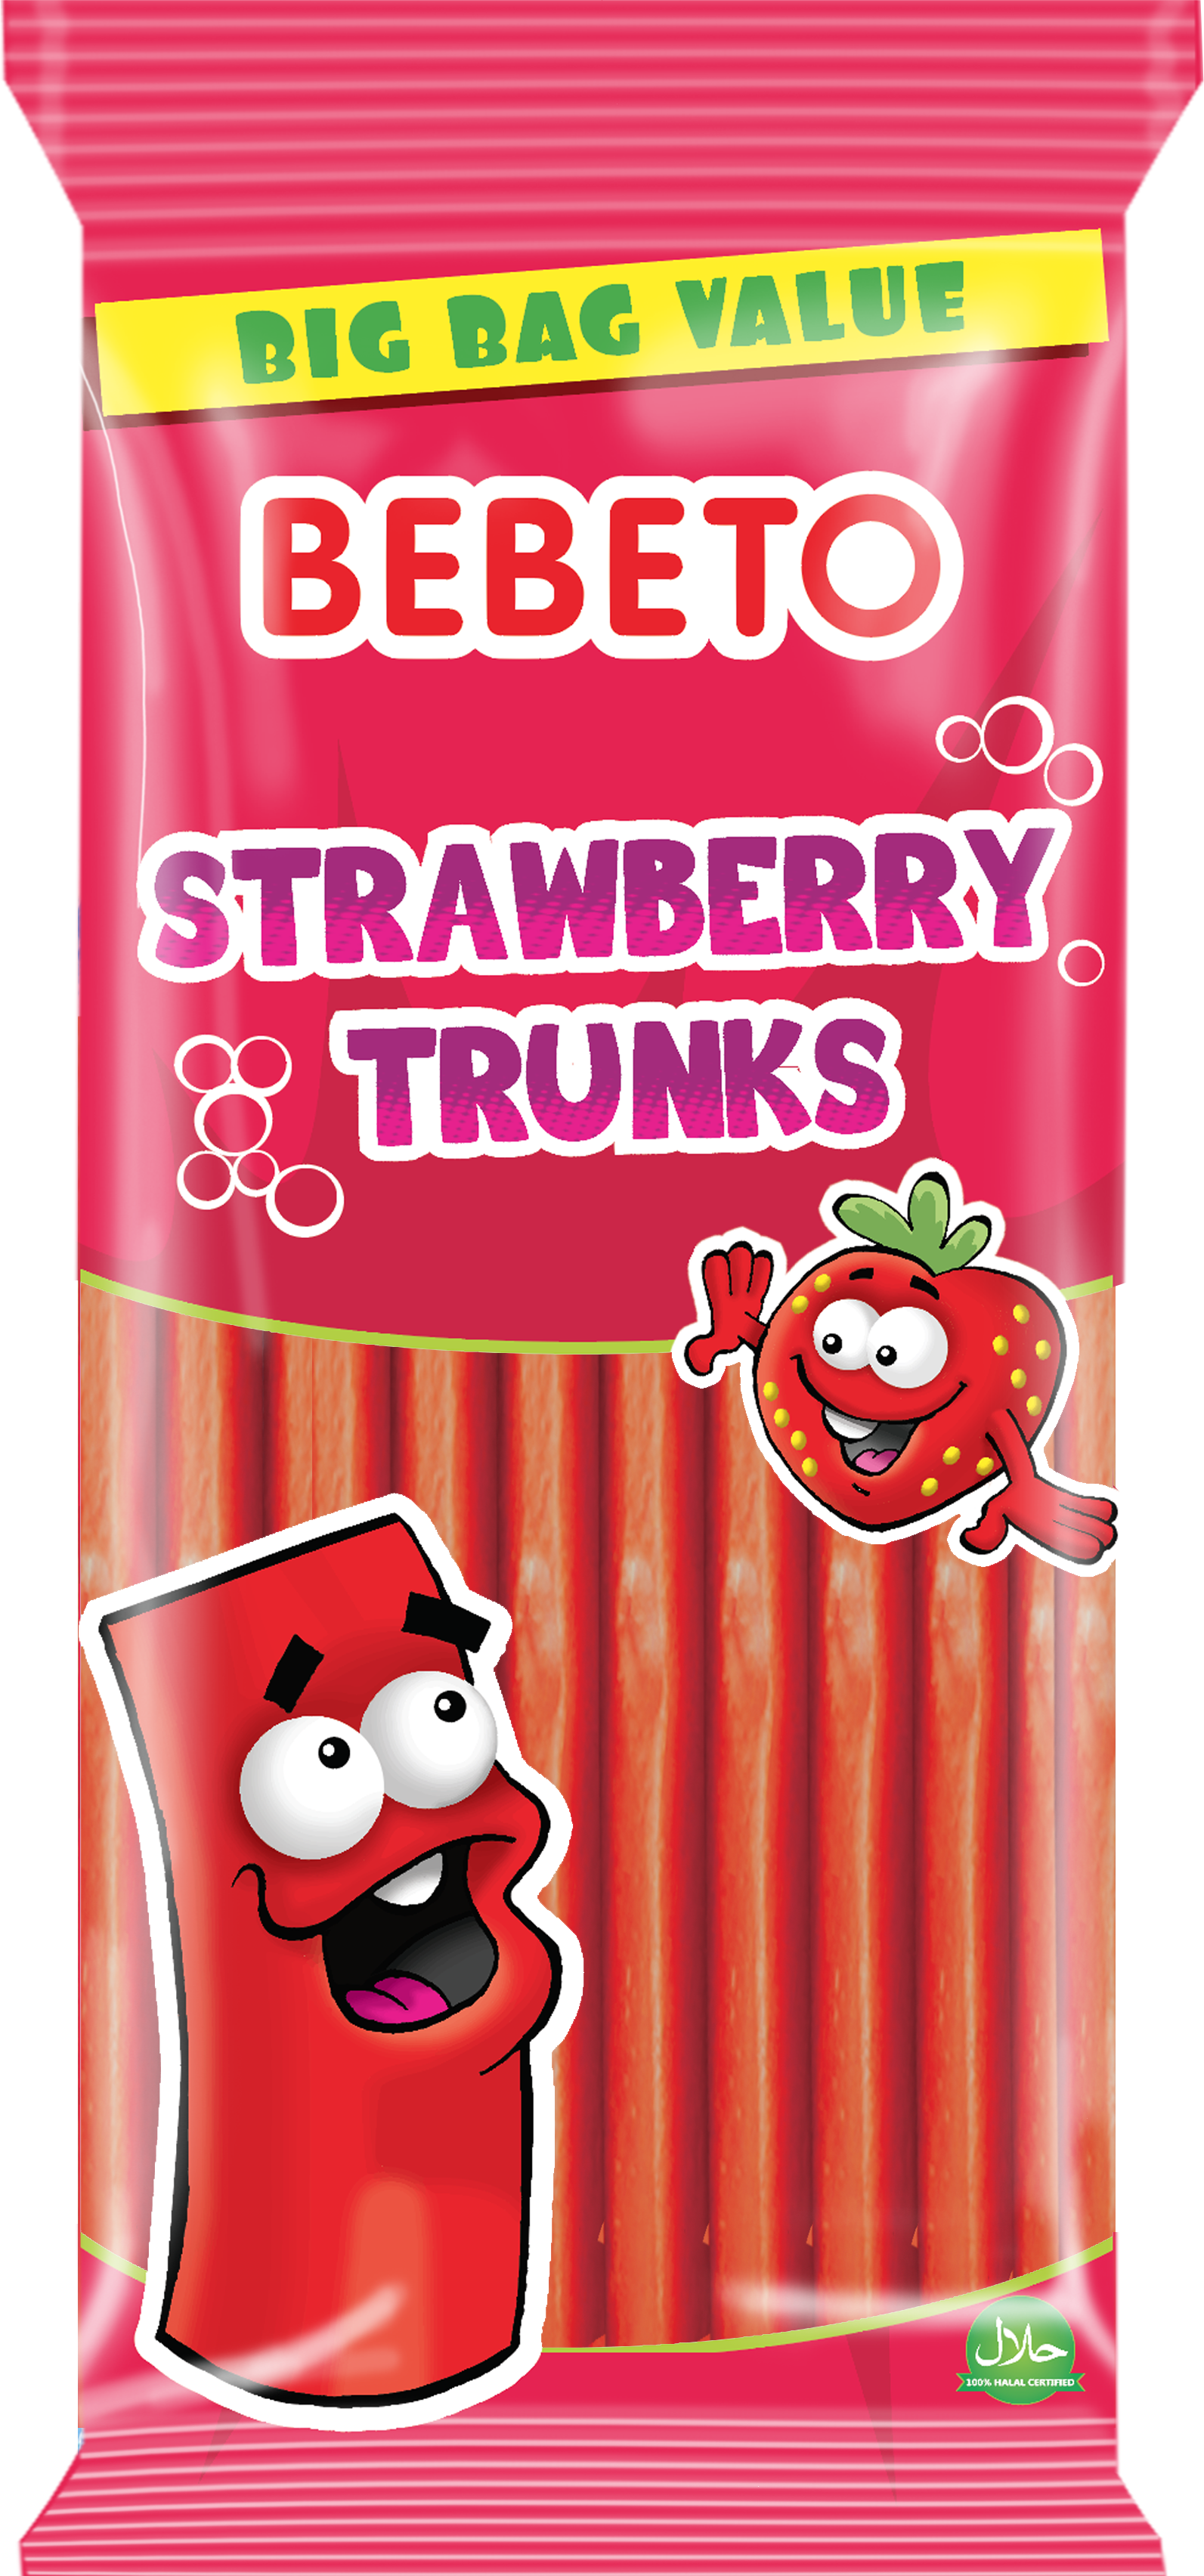 Strawberry Trunks